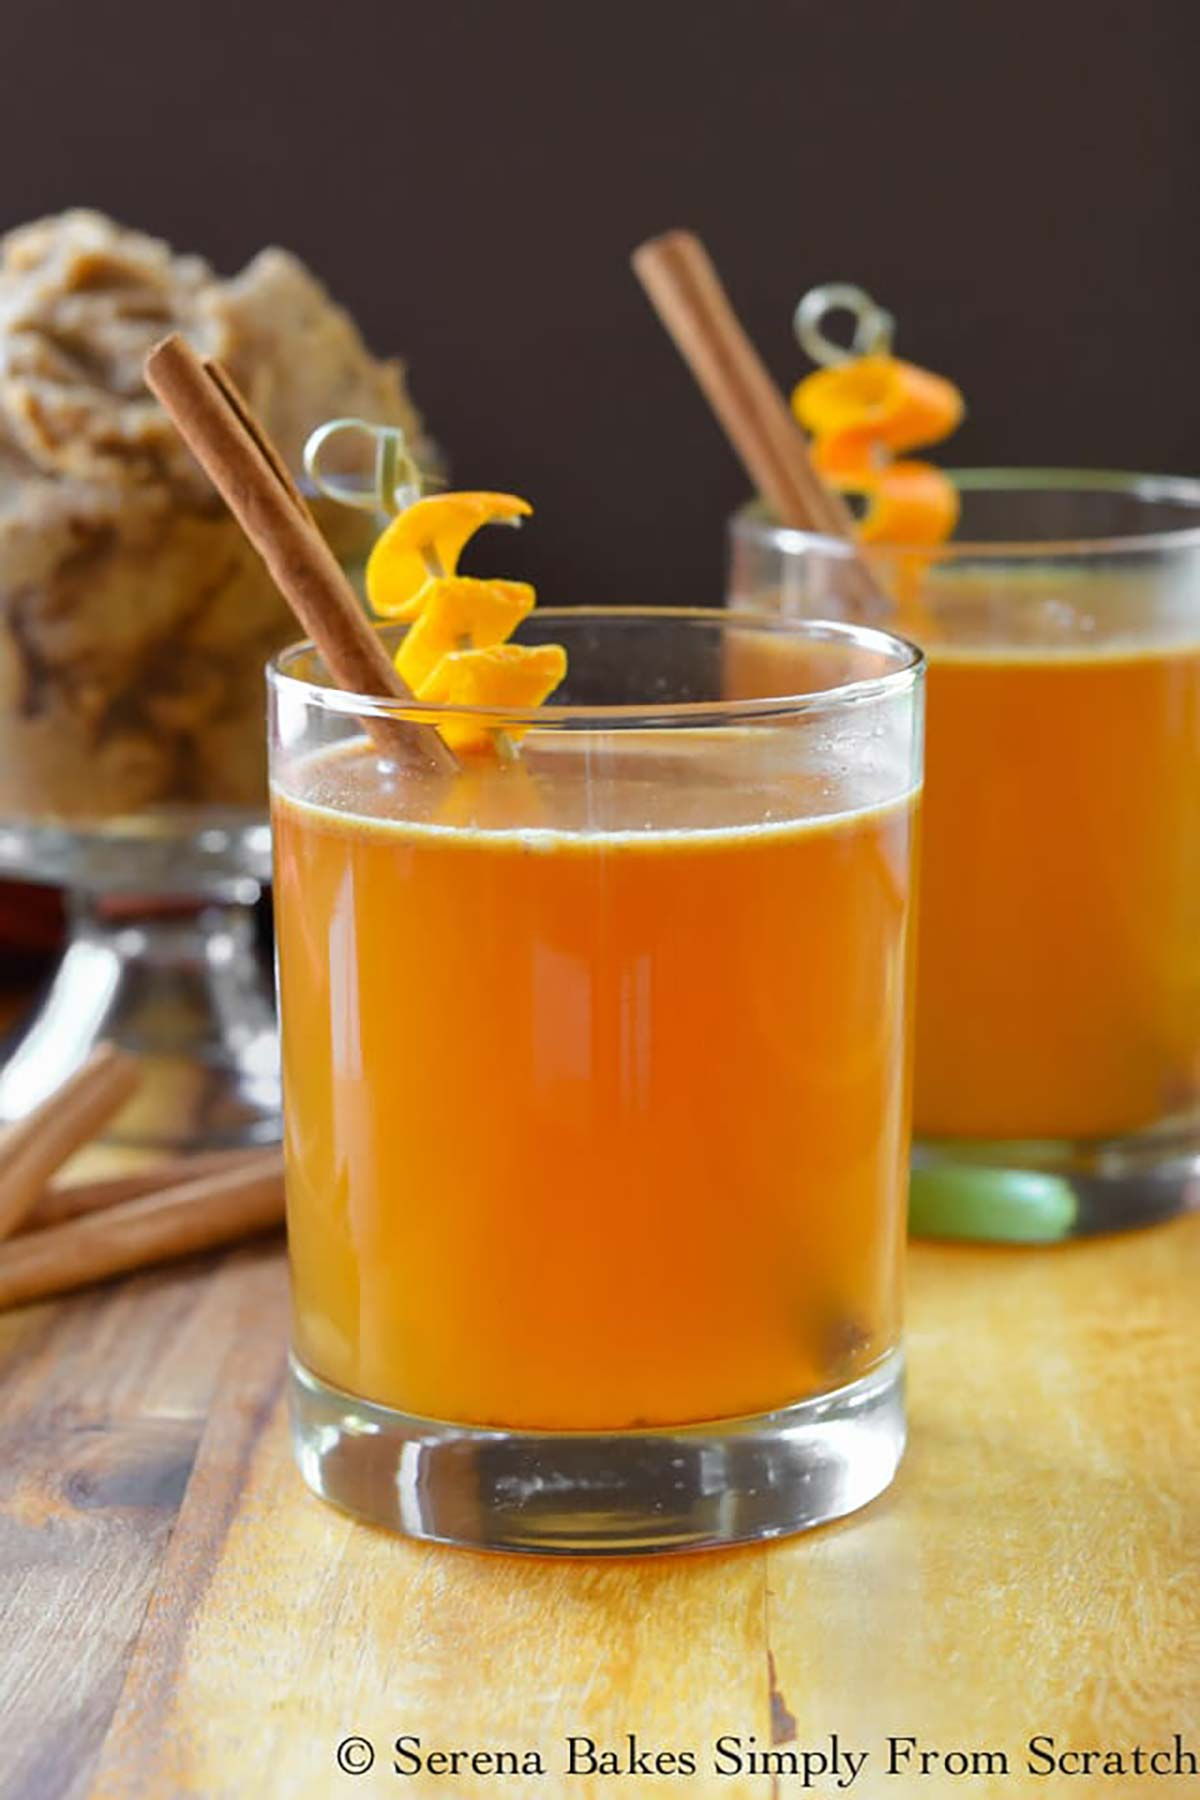 2 cocktails garnished with orange peels and cinnamon sticks.